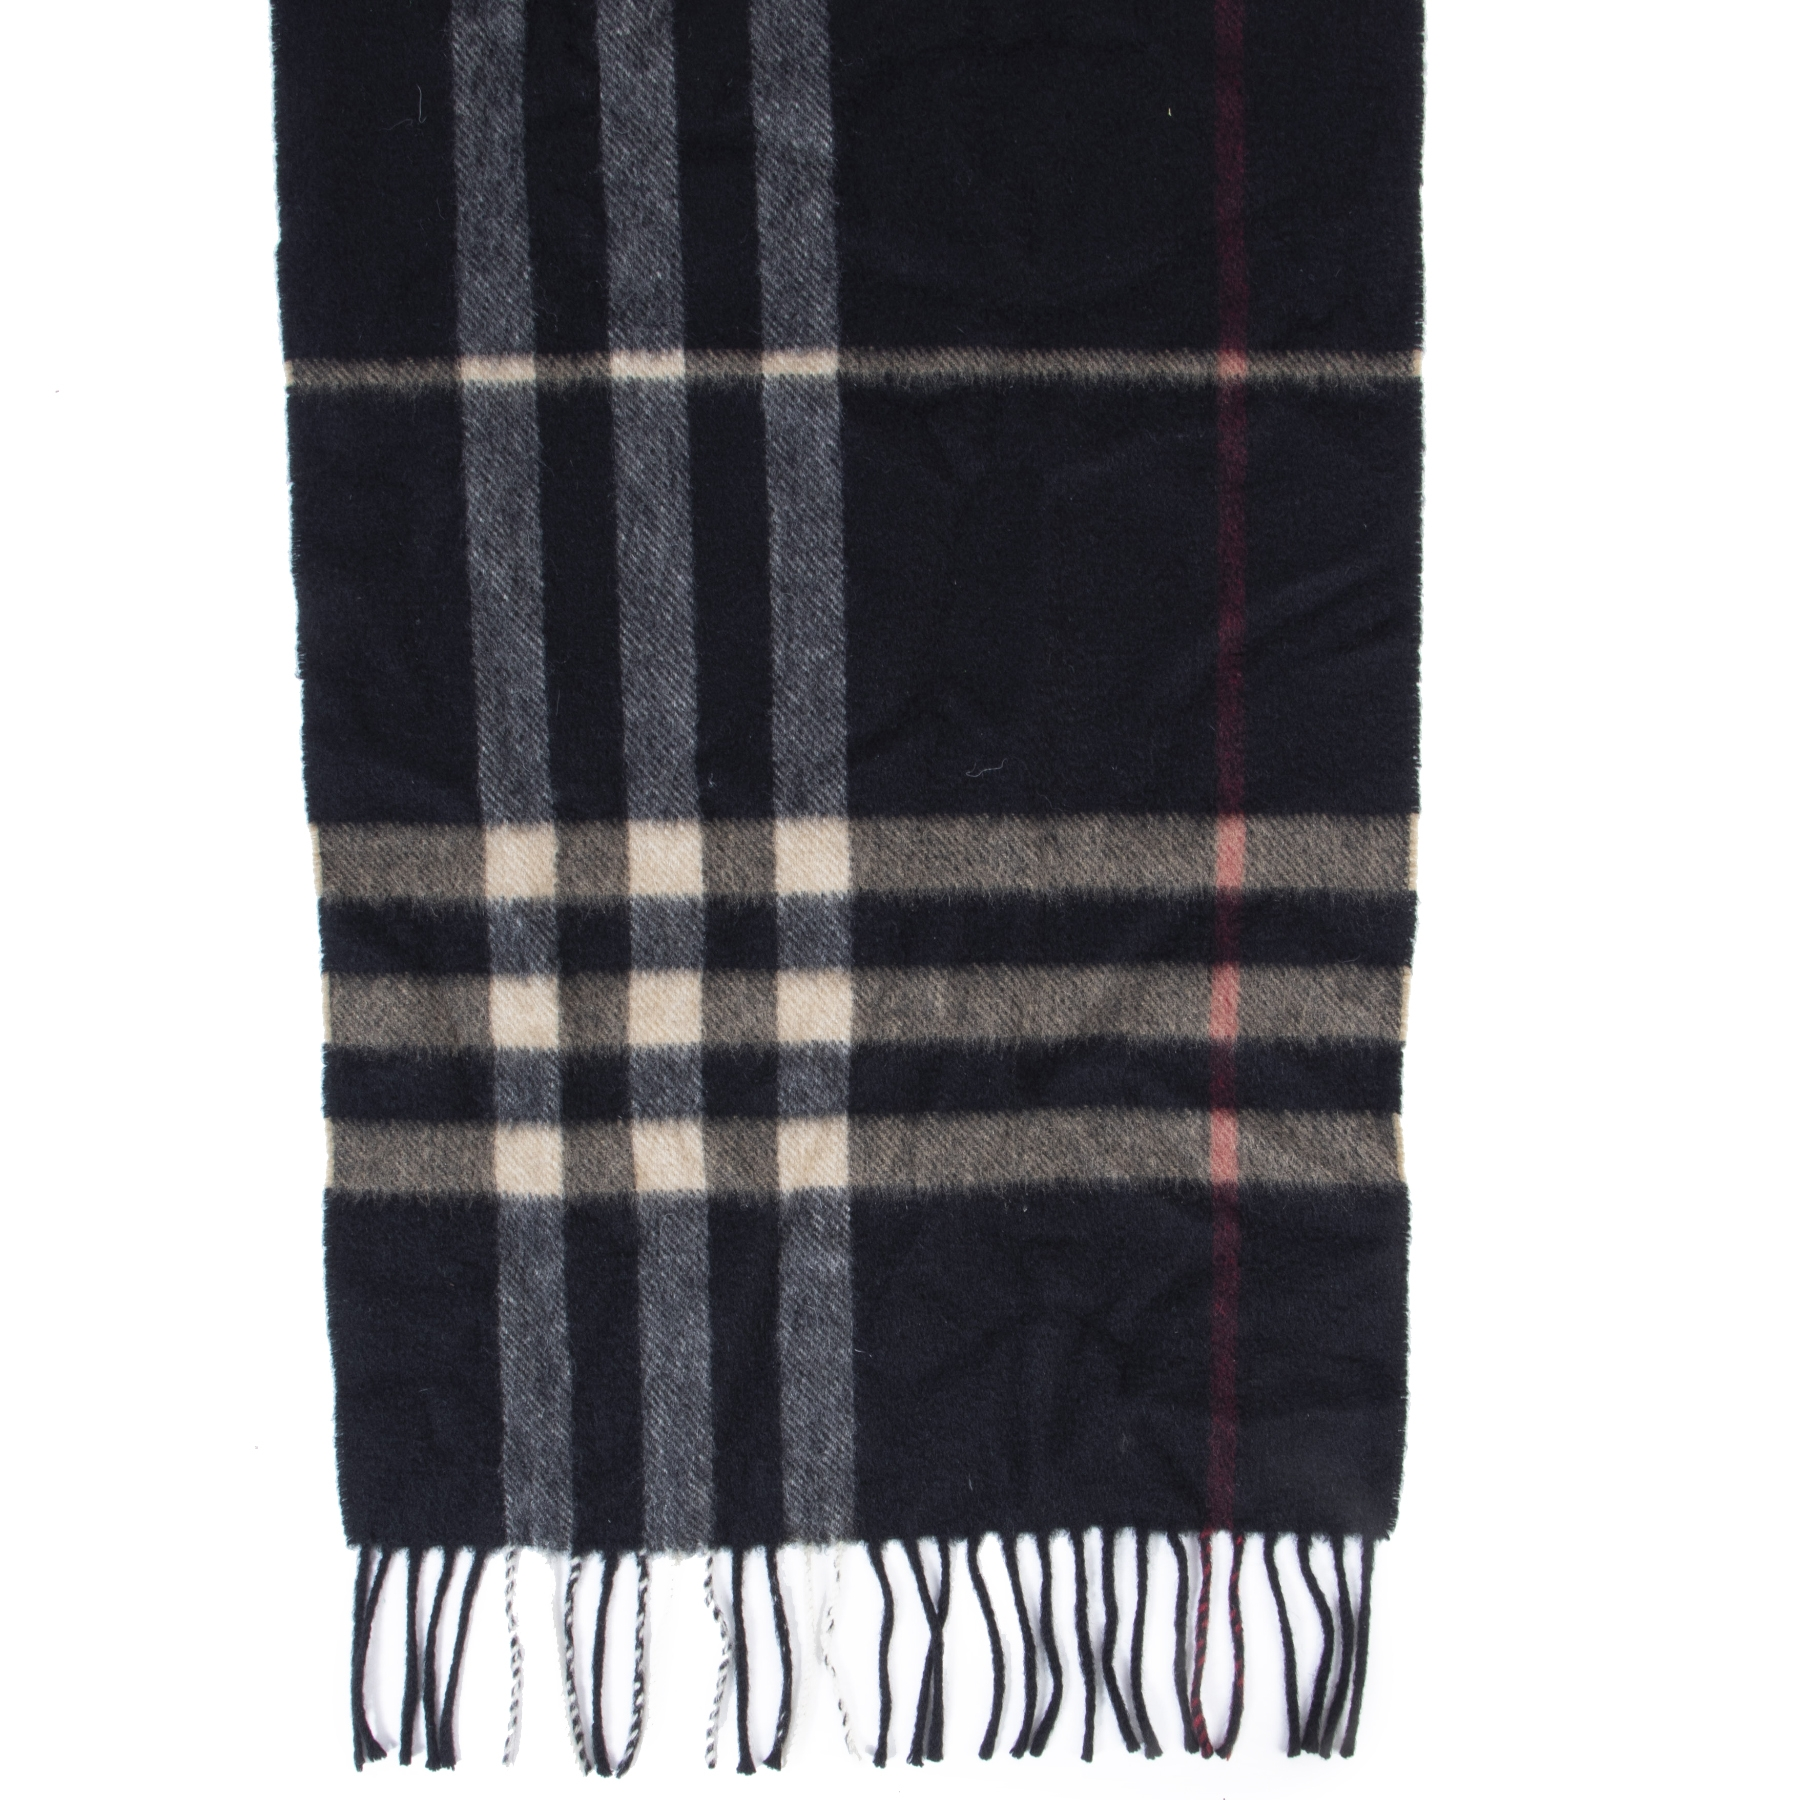 Authentic secondhand Burberry Classic Check Cashmere Scarf designer scarves accessories luxury vintage webshop safe secure online shopping